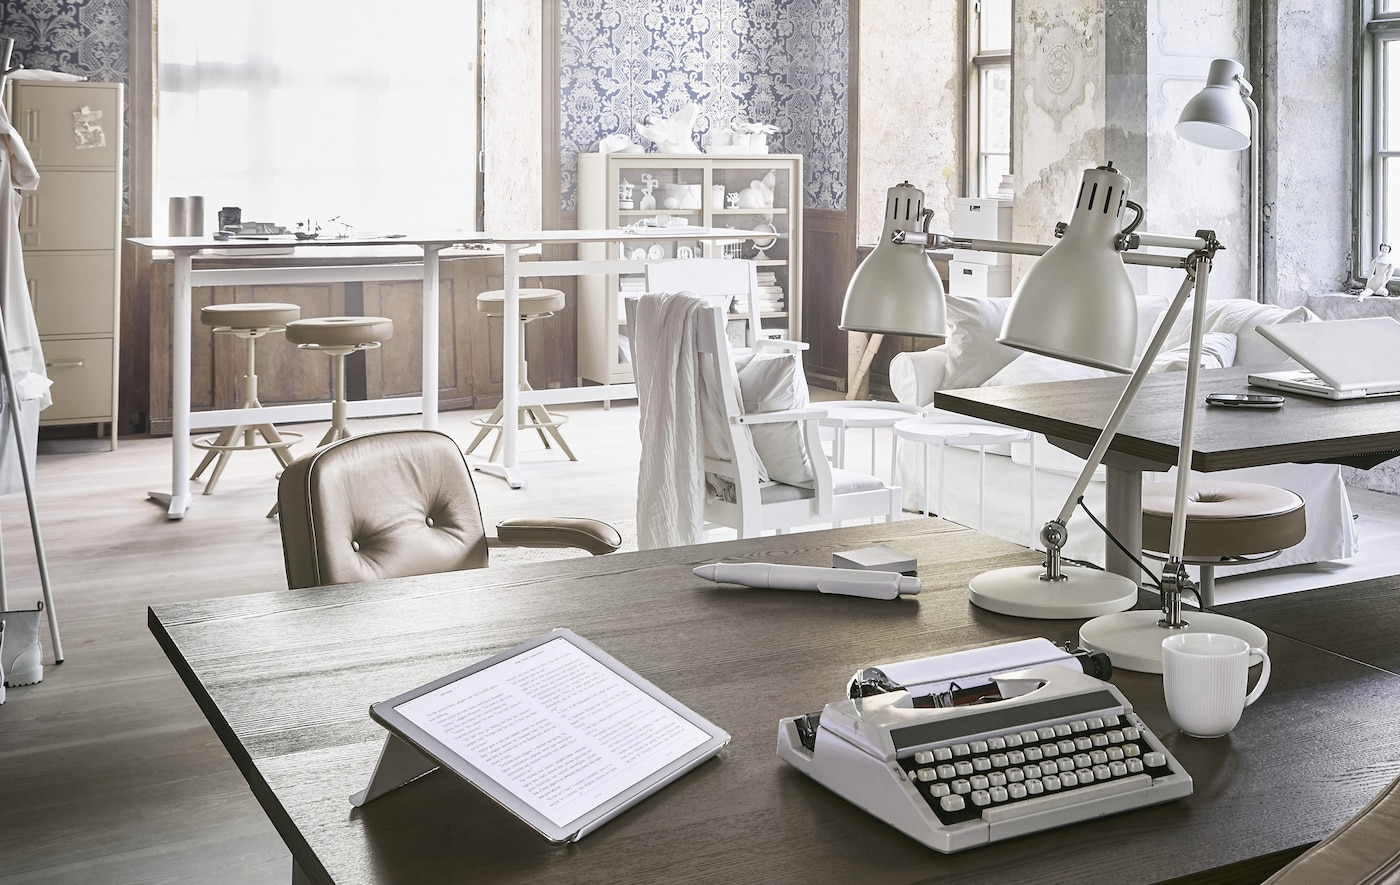 A brown desk in an office accessorized with a type writer, tablet and two work lamps.